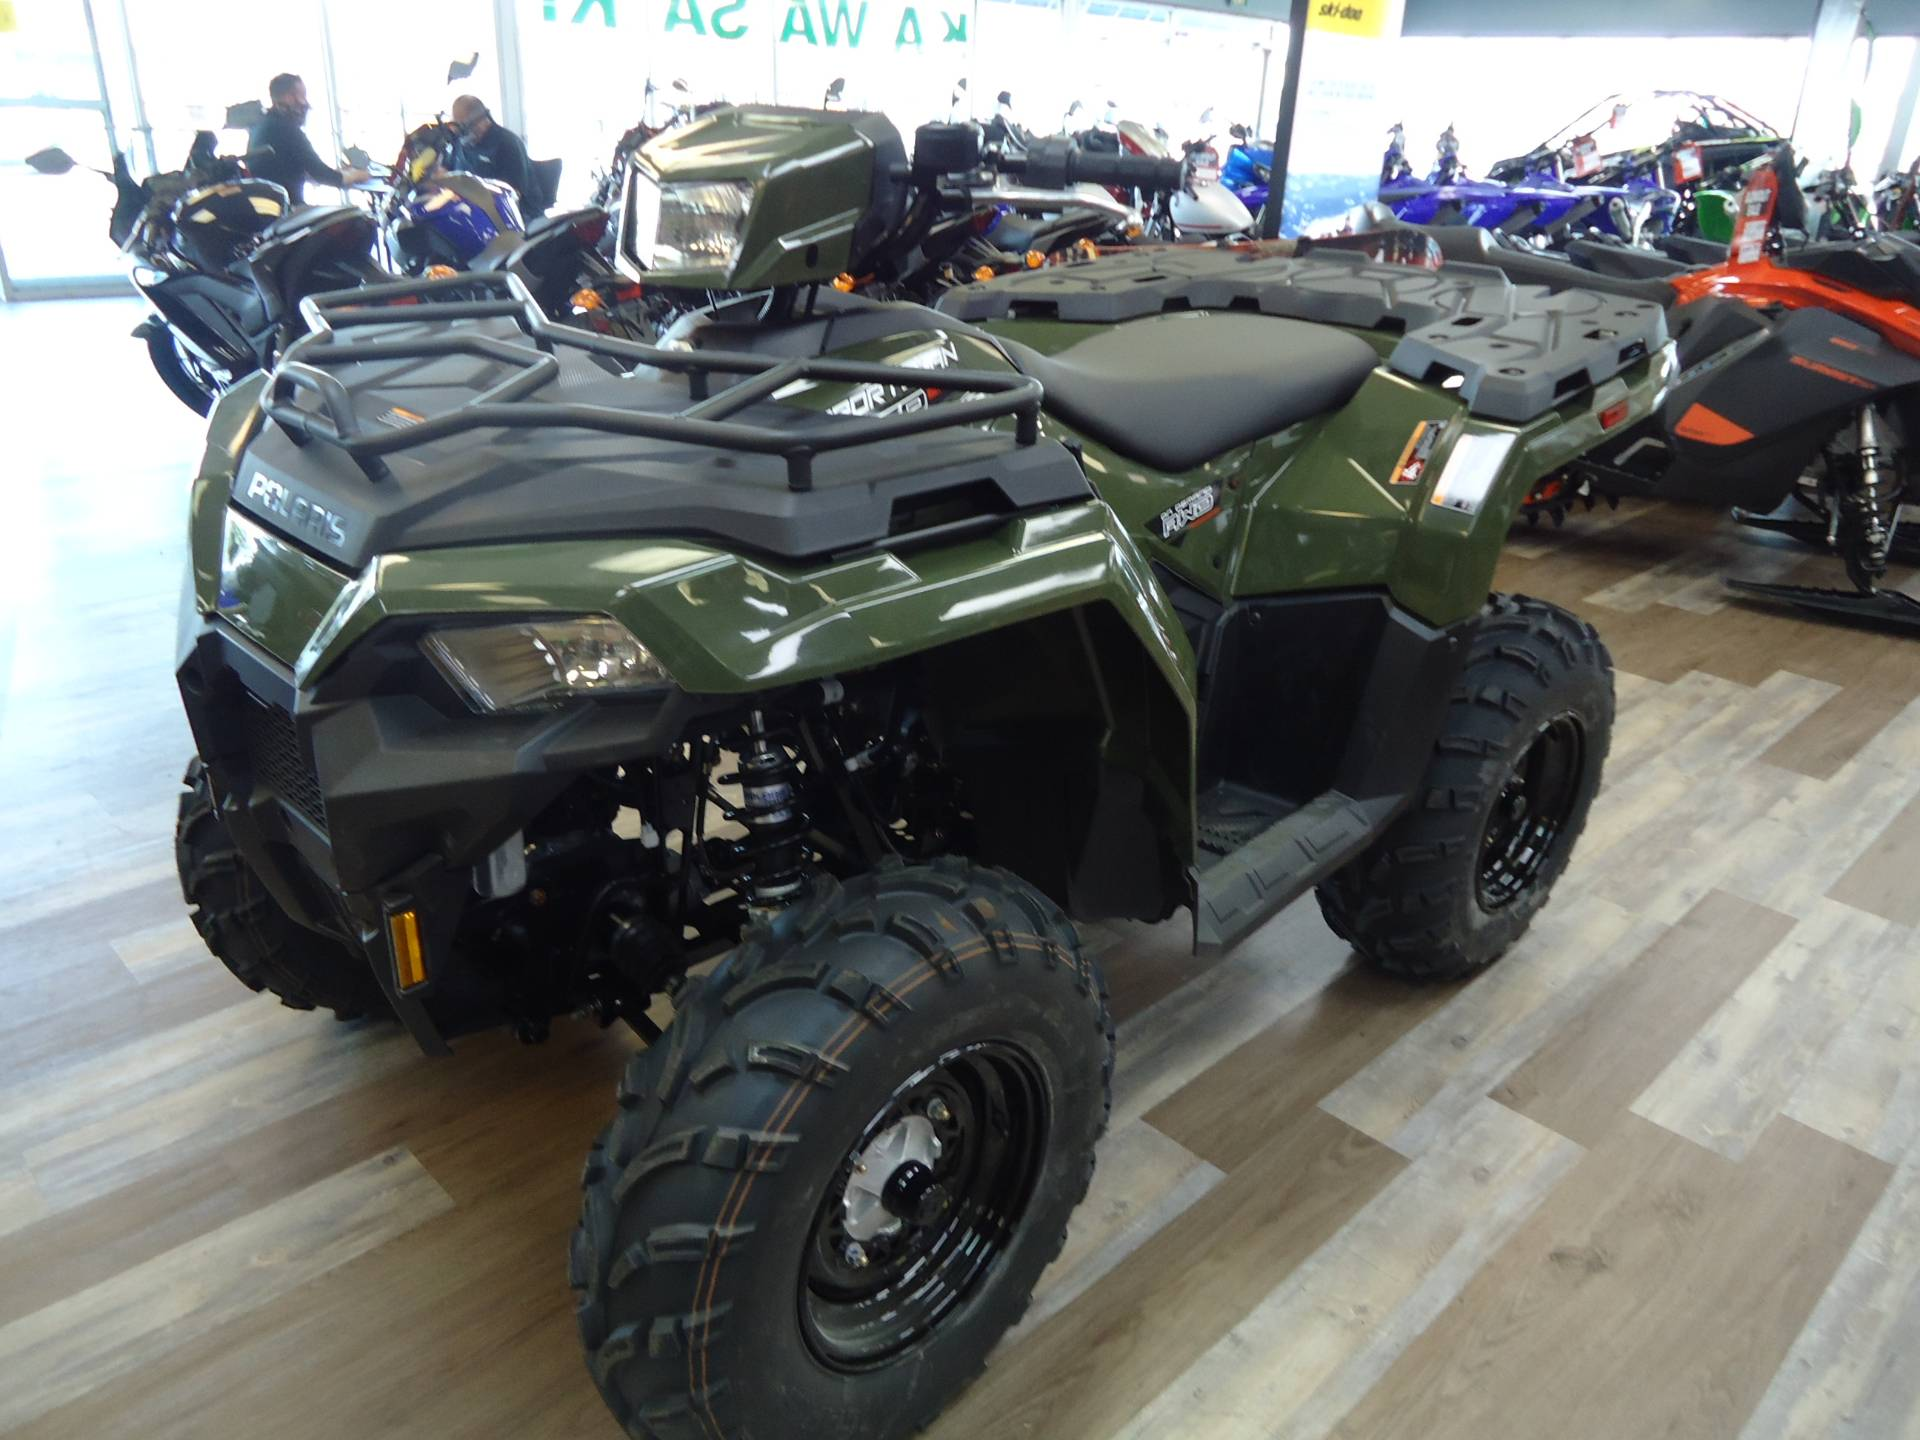 2021 Polaris Sportsman 570 in Denver, Colorado - Photo 7